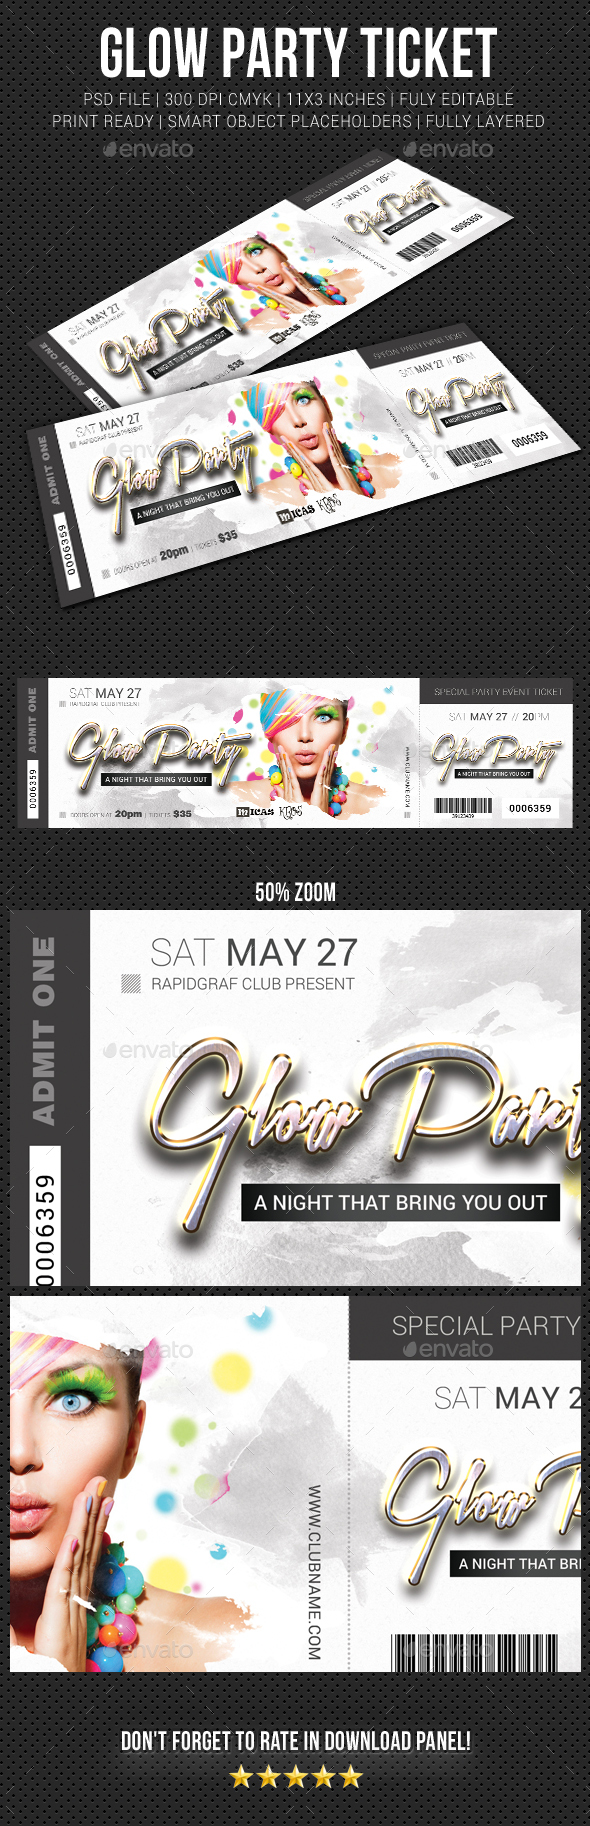 Glow Party Event Ticket - Cards & Invites Print Templates